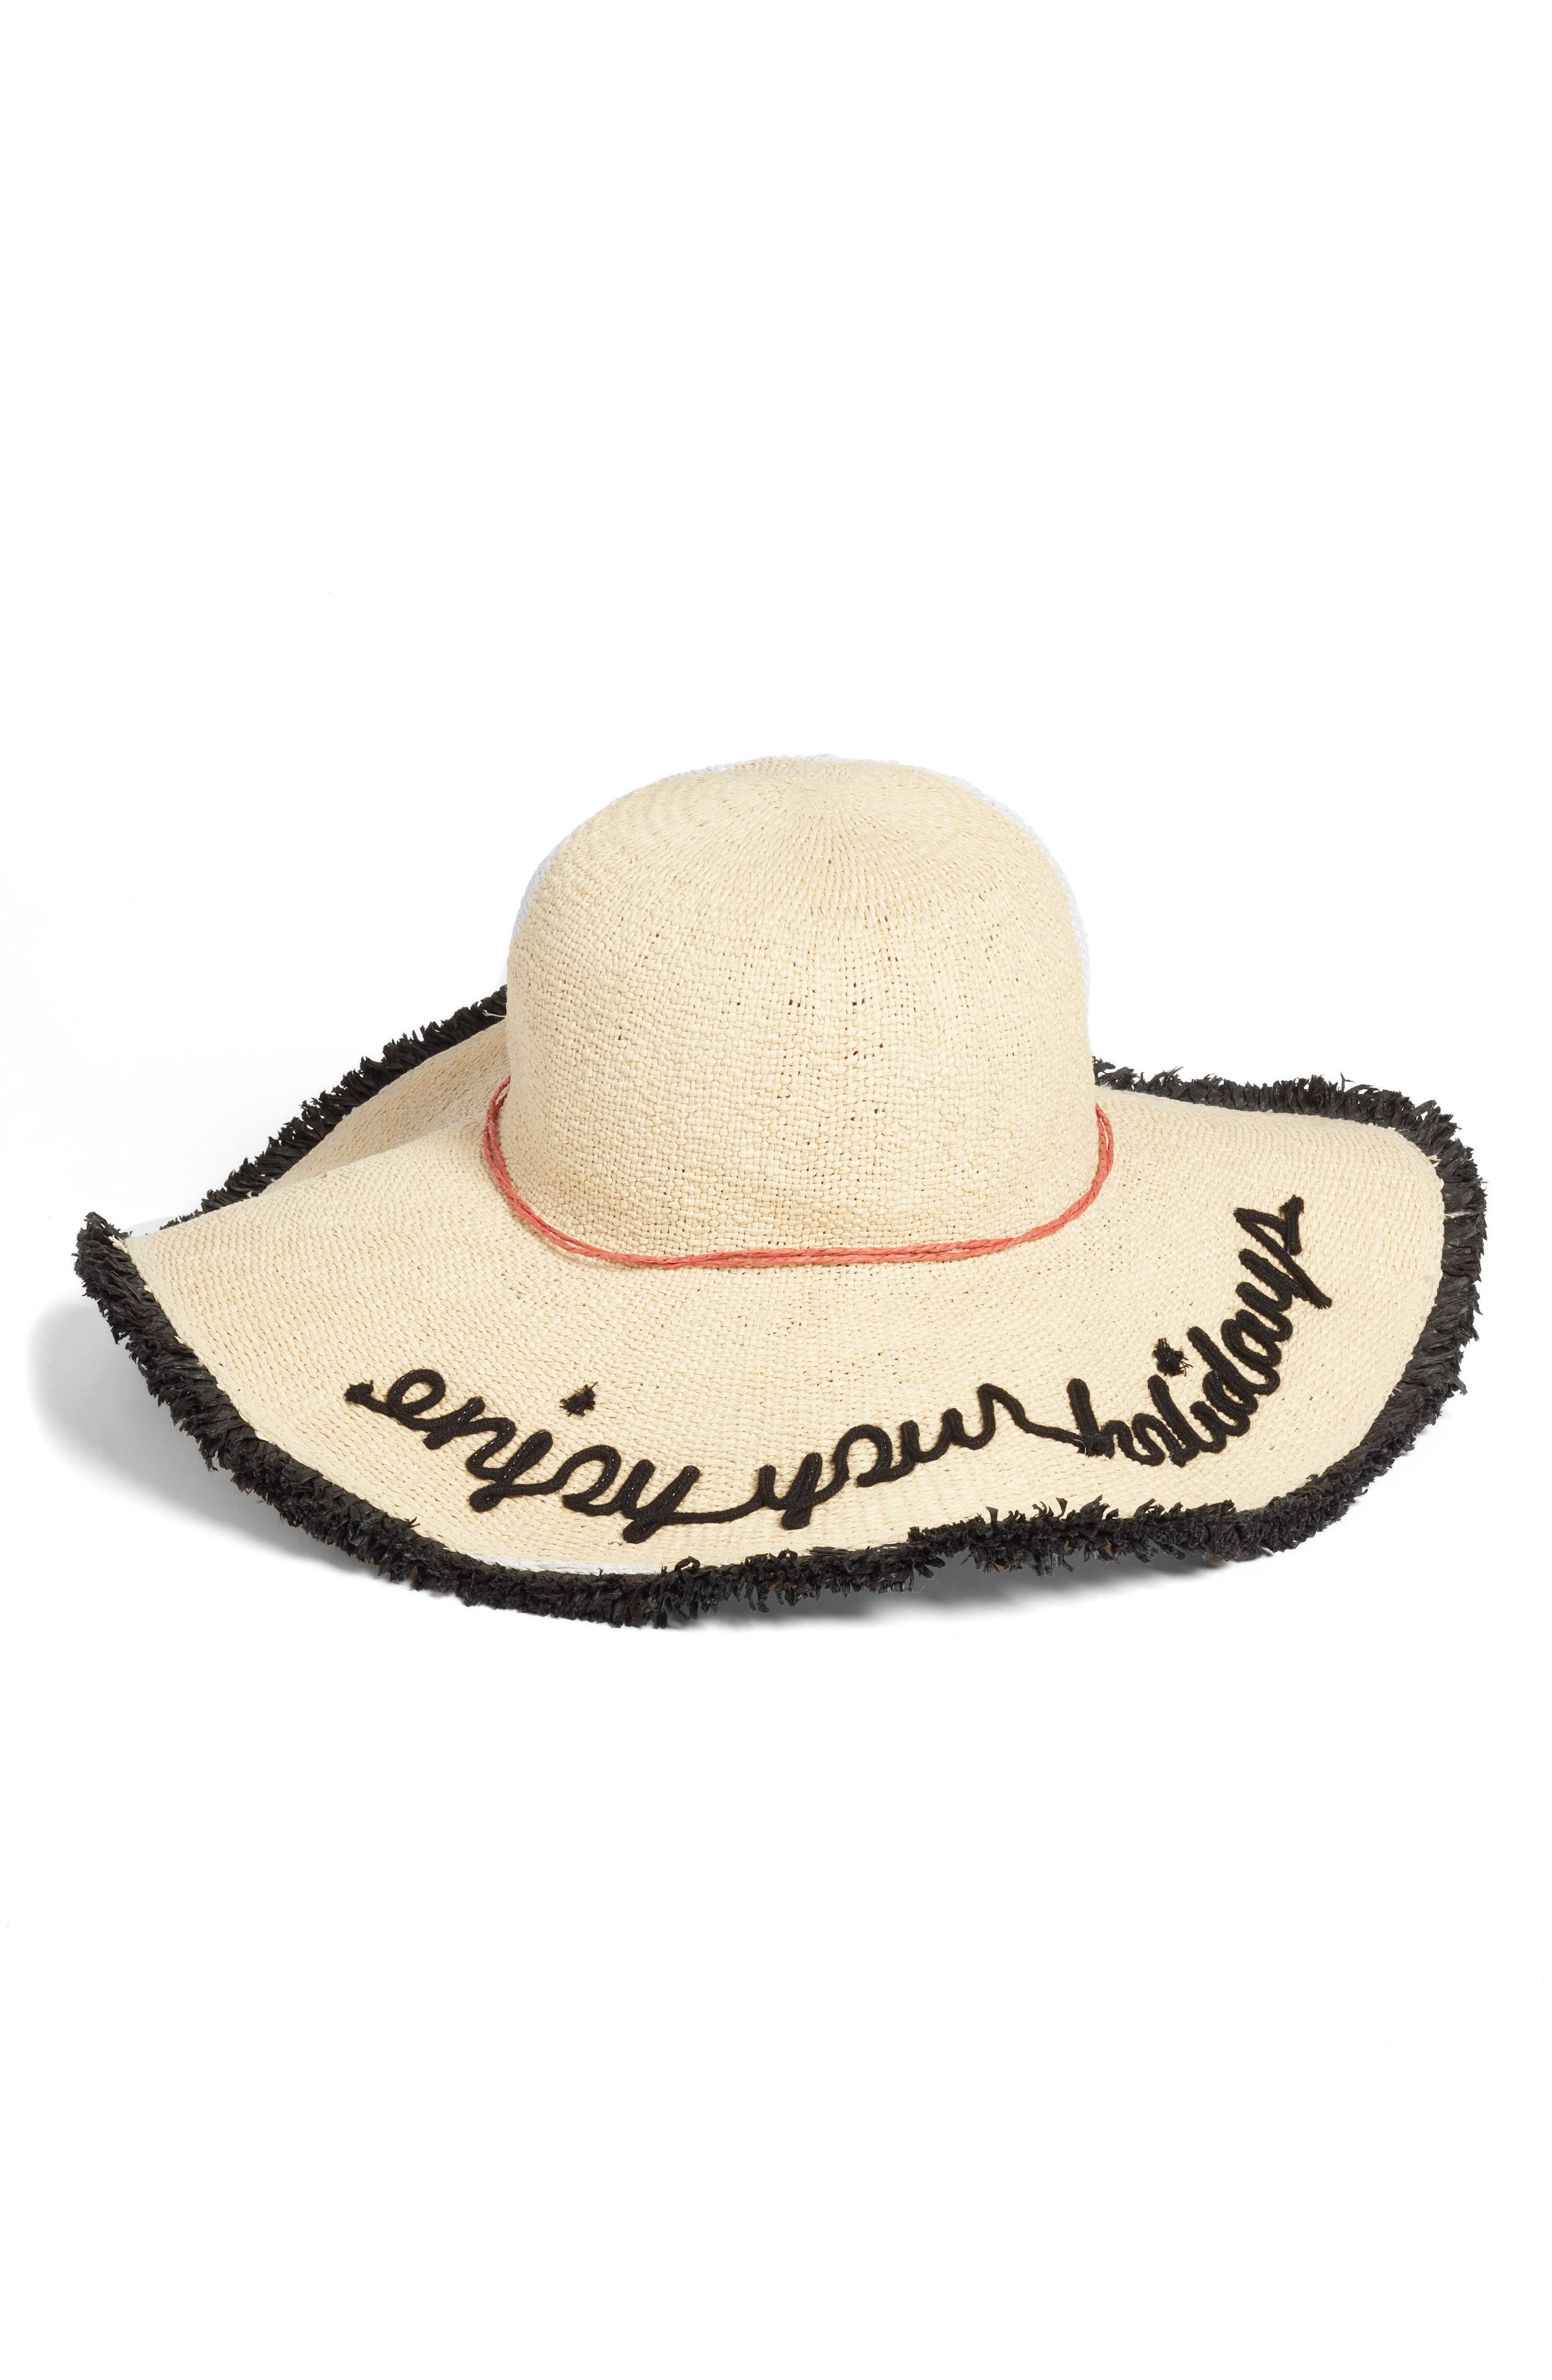 Embroidered Straw Sun Hat with Fringe,                         Main,                         color, NATURAL